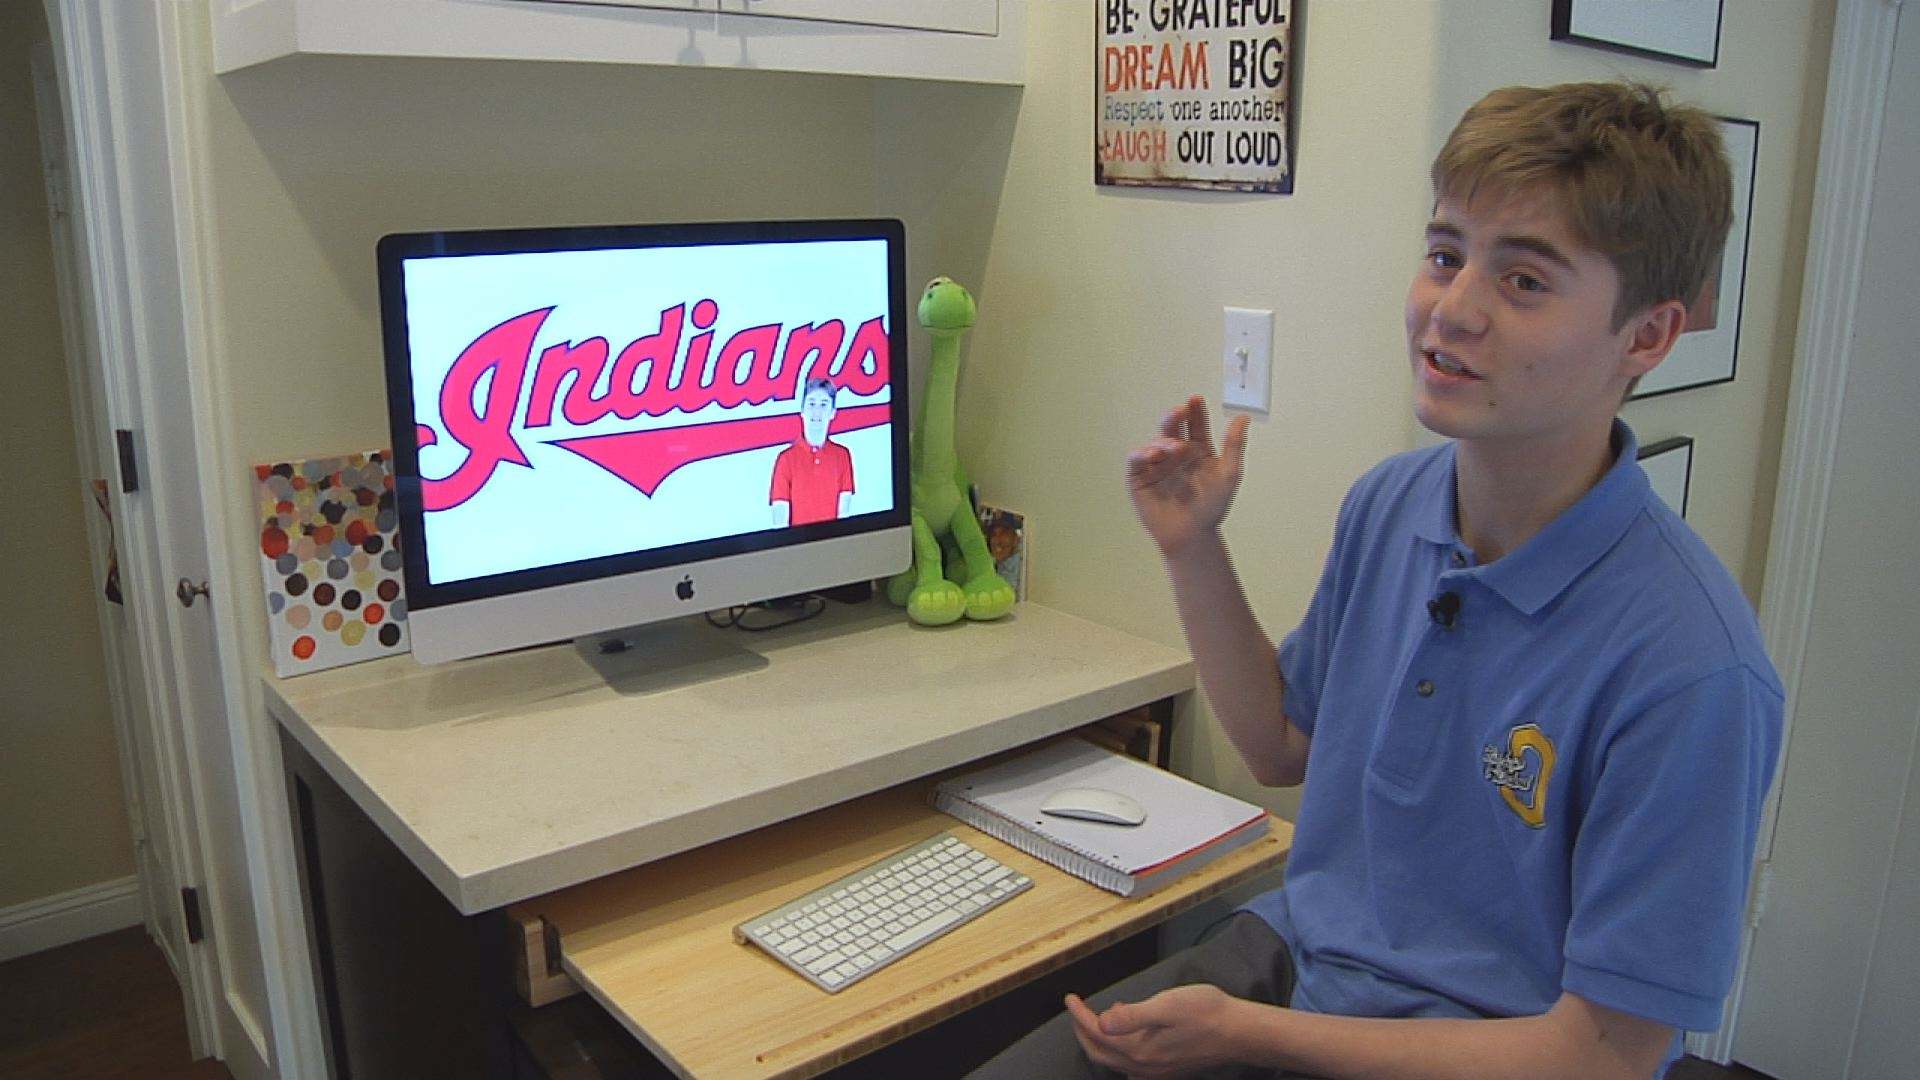 Connor Garcia Whitehill, an 8th grader from Oakland, created a formula that predicted the 2016 World Series matchup for an 8th grade project.